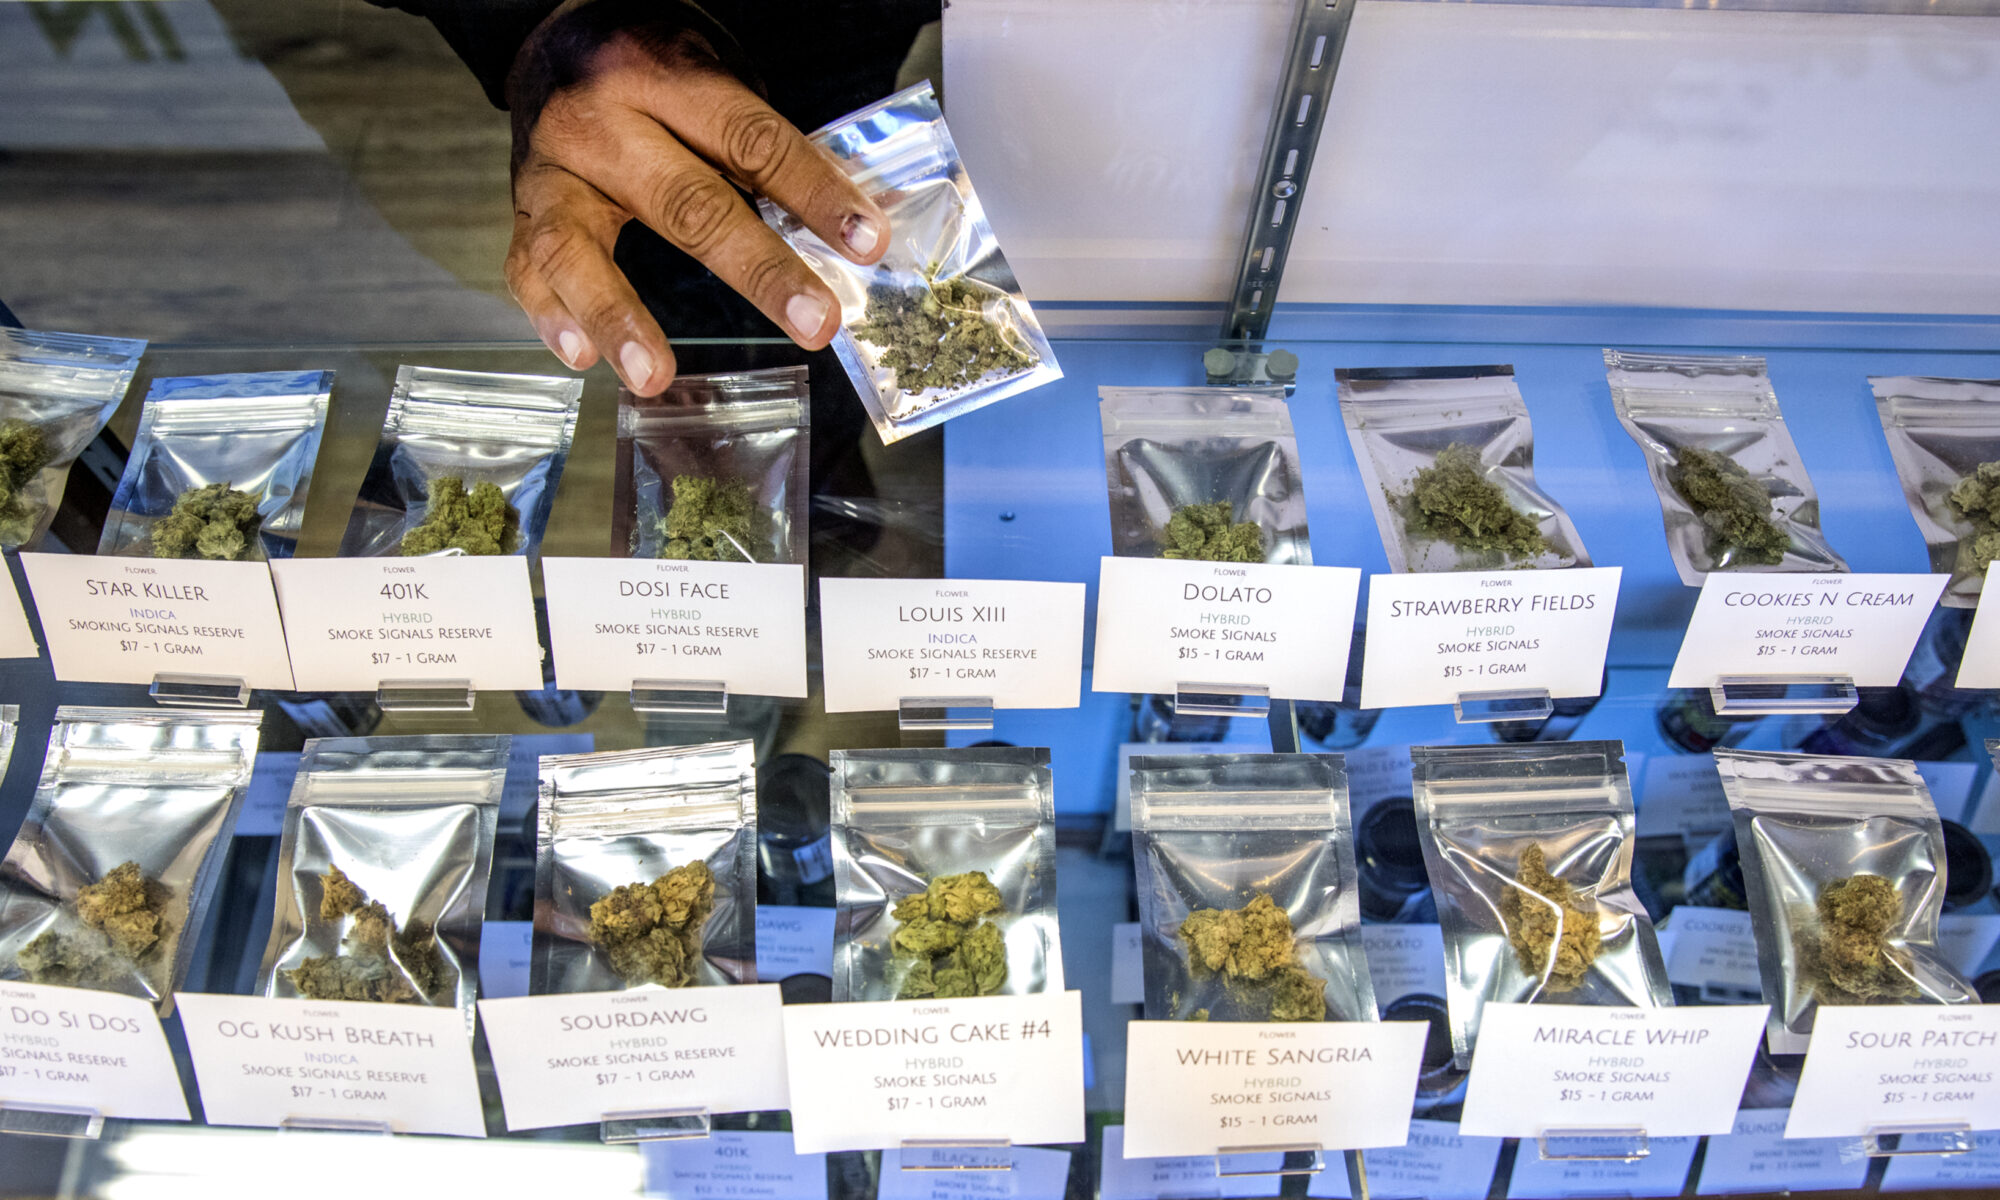 A table of packaged marijuana for sale